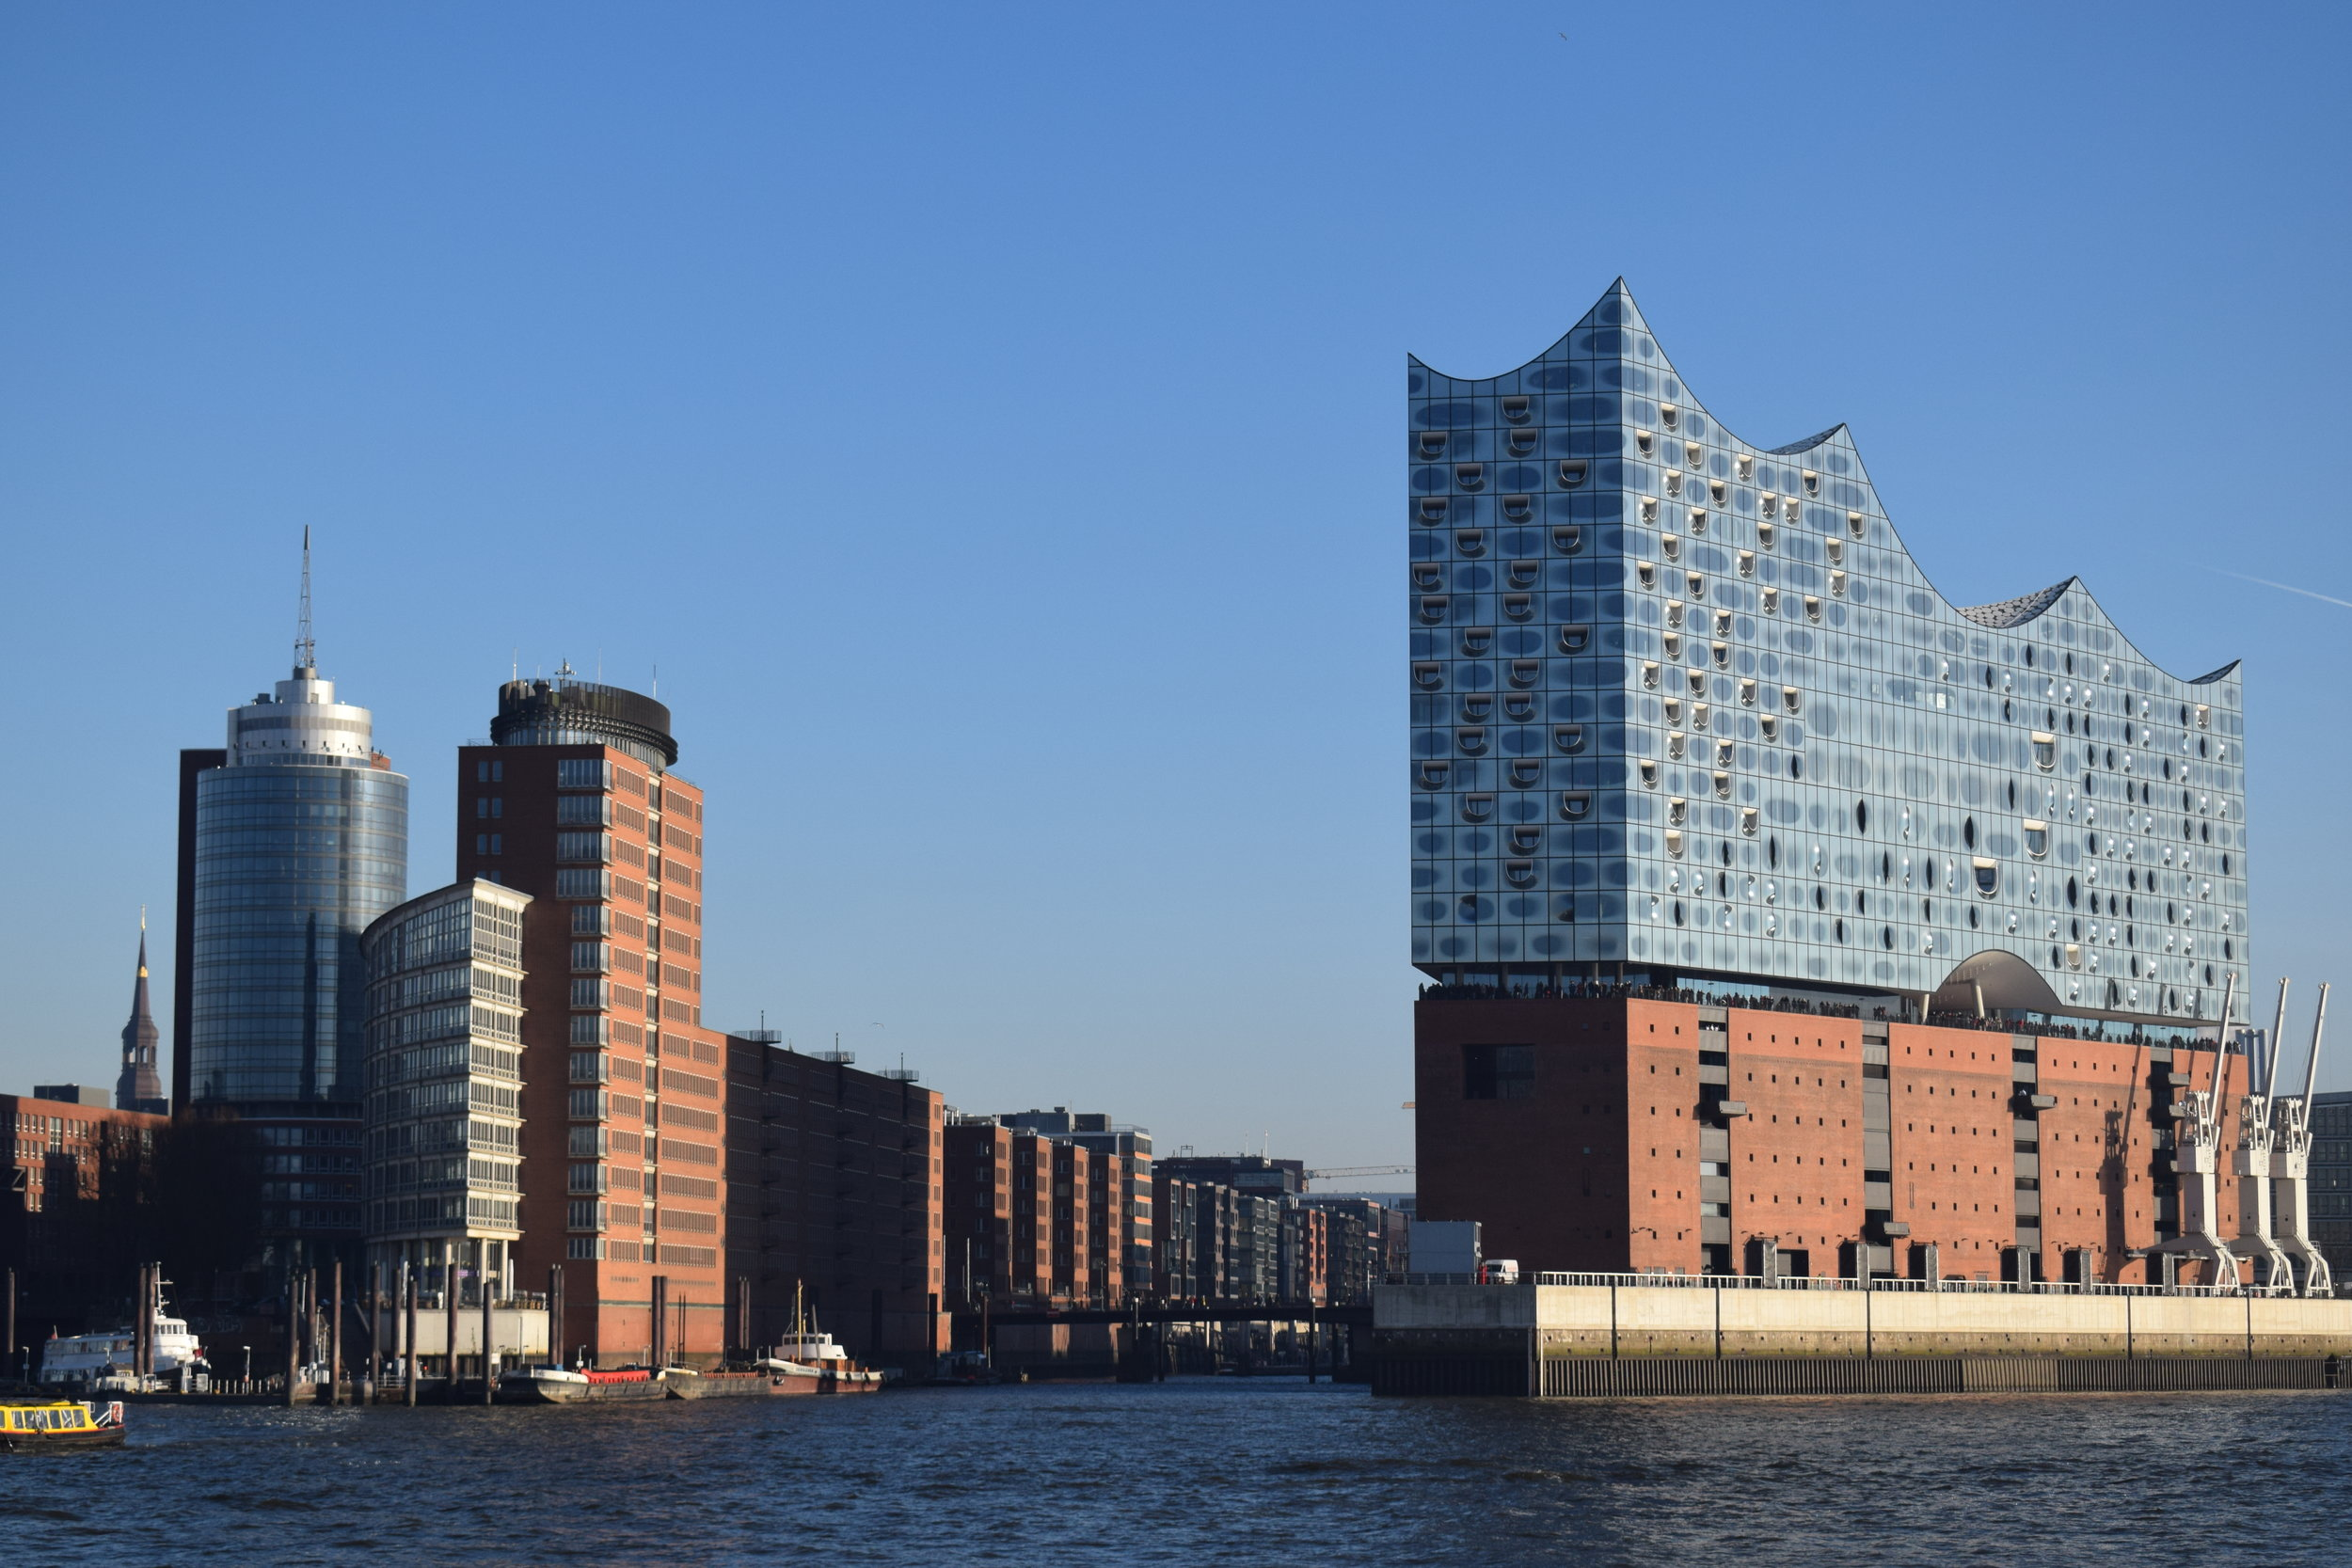 A gateway to the Speicherstadt from the River Elbe, overlooked on the right by the Elbphilharmonie - a concert hall.